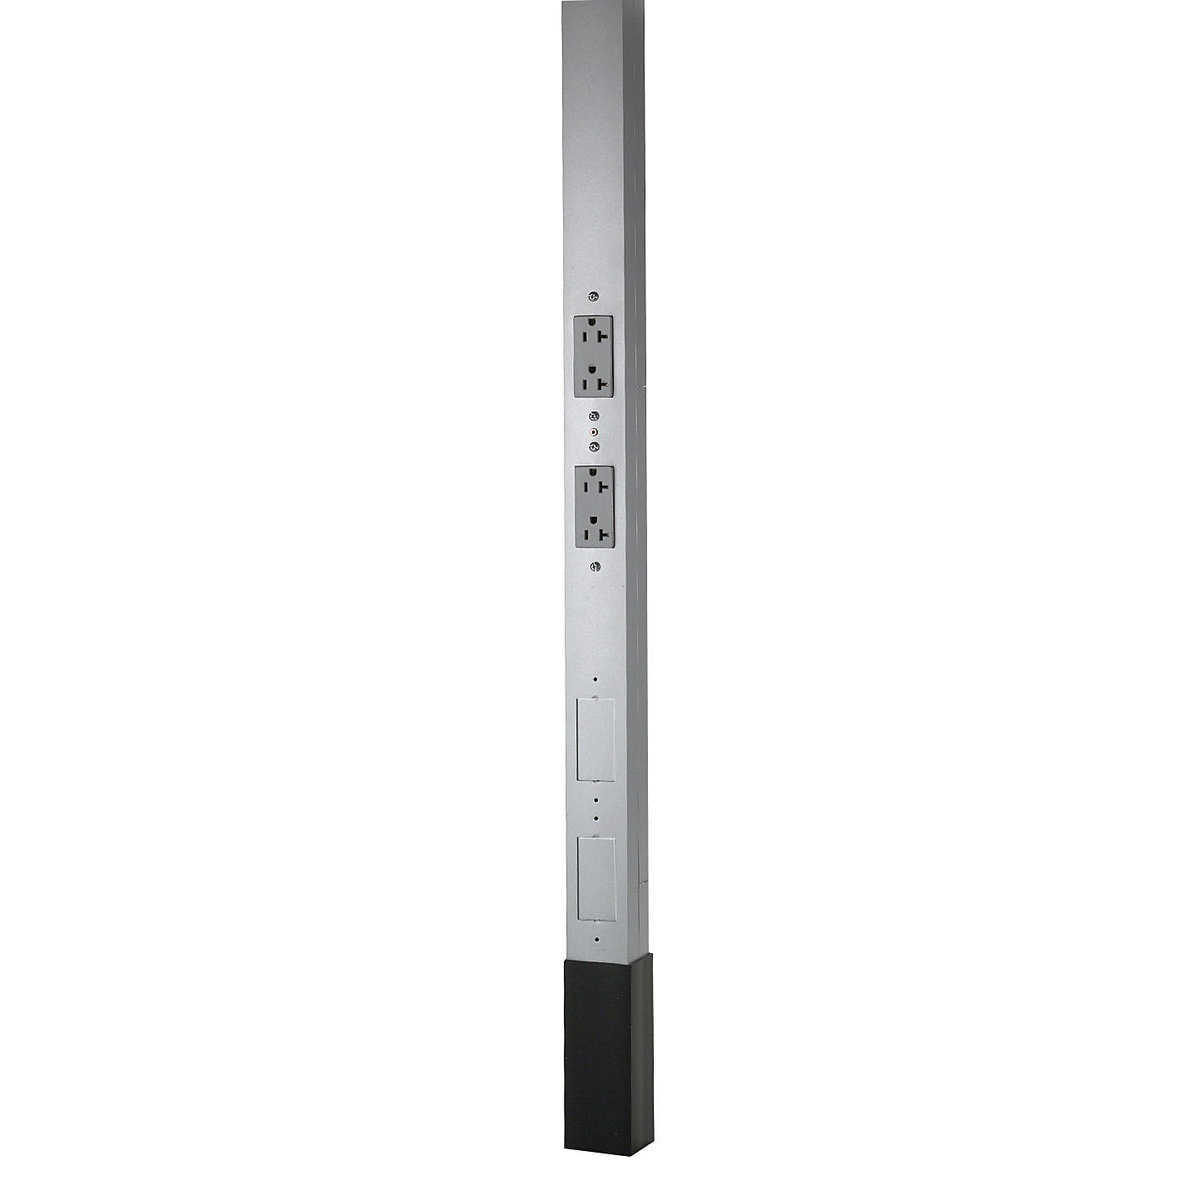 Hubbell-Wiring HBLPP10A Three Service Pole 10-ft 2-Inch x 2.13-Inch on